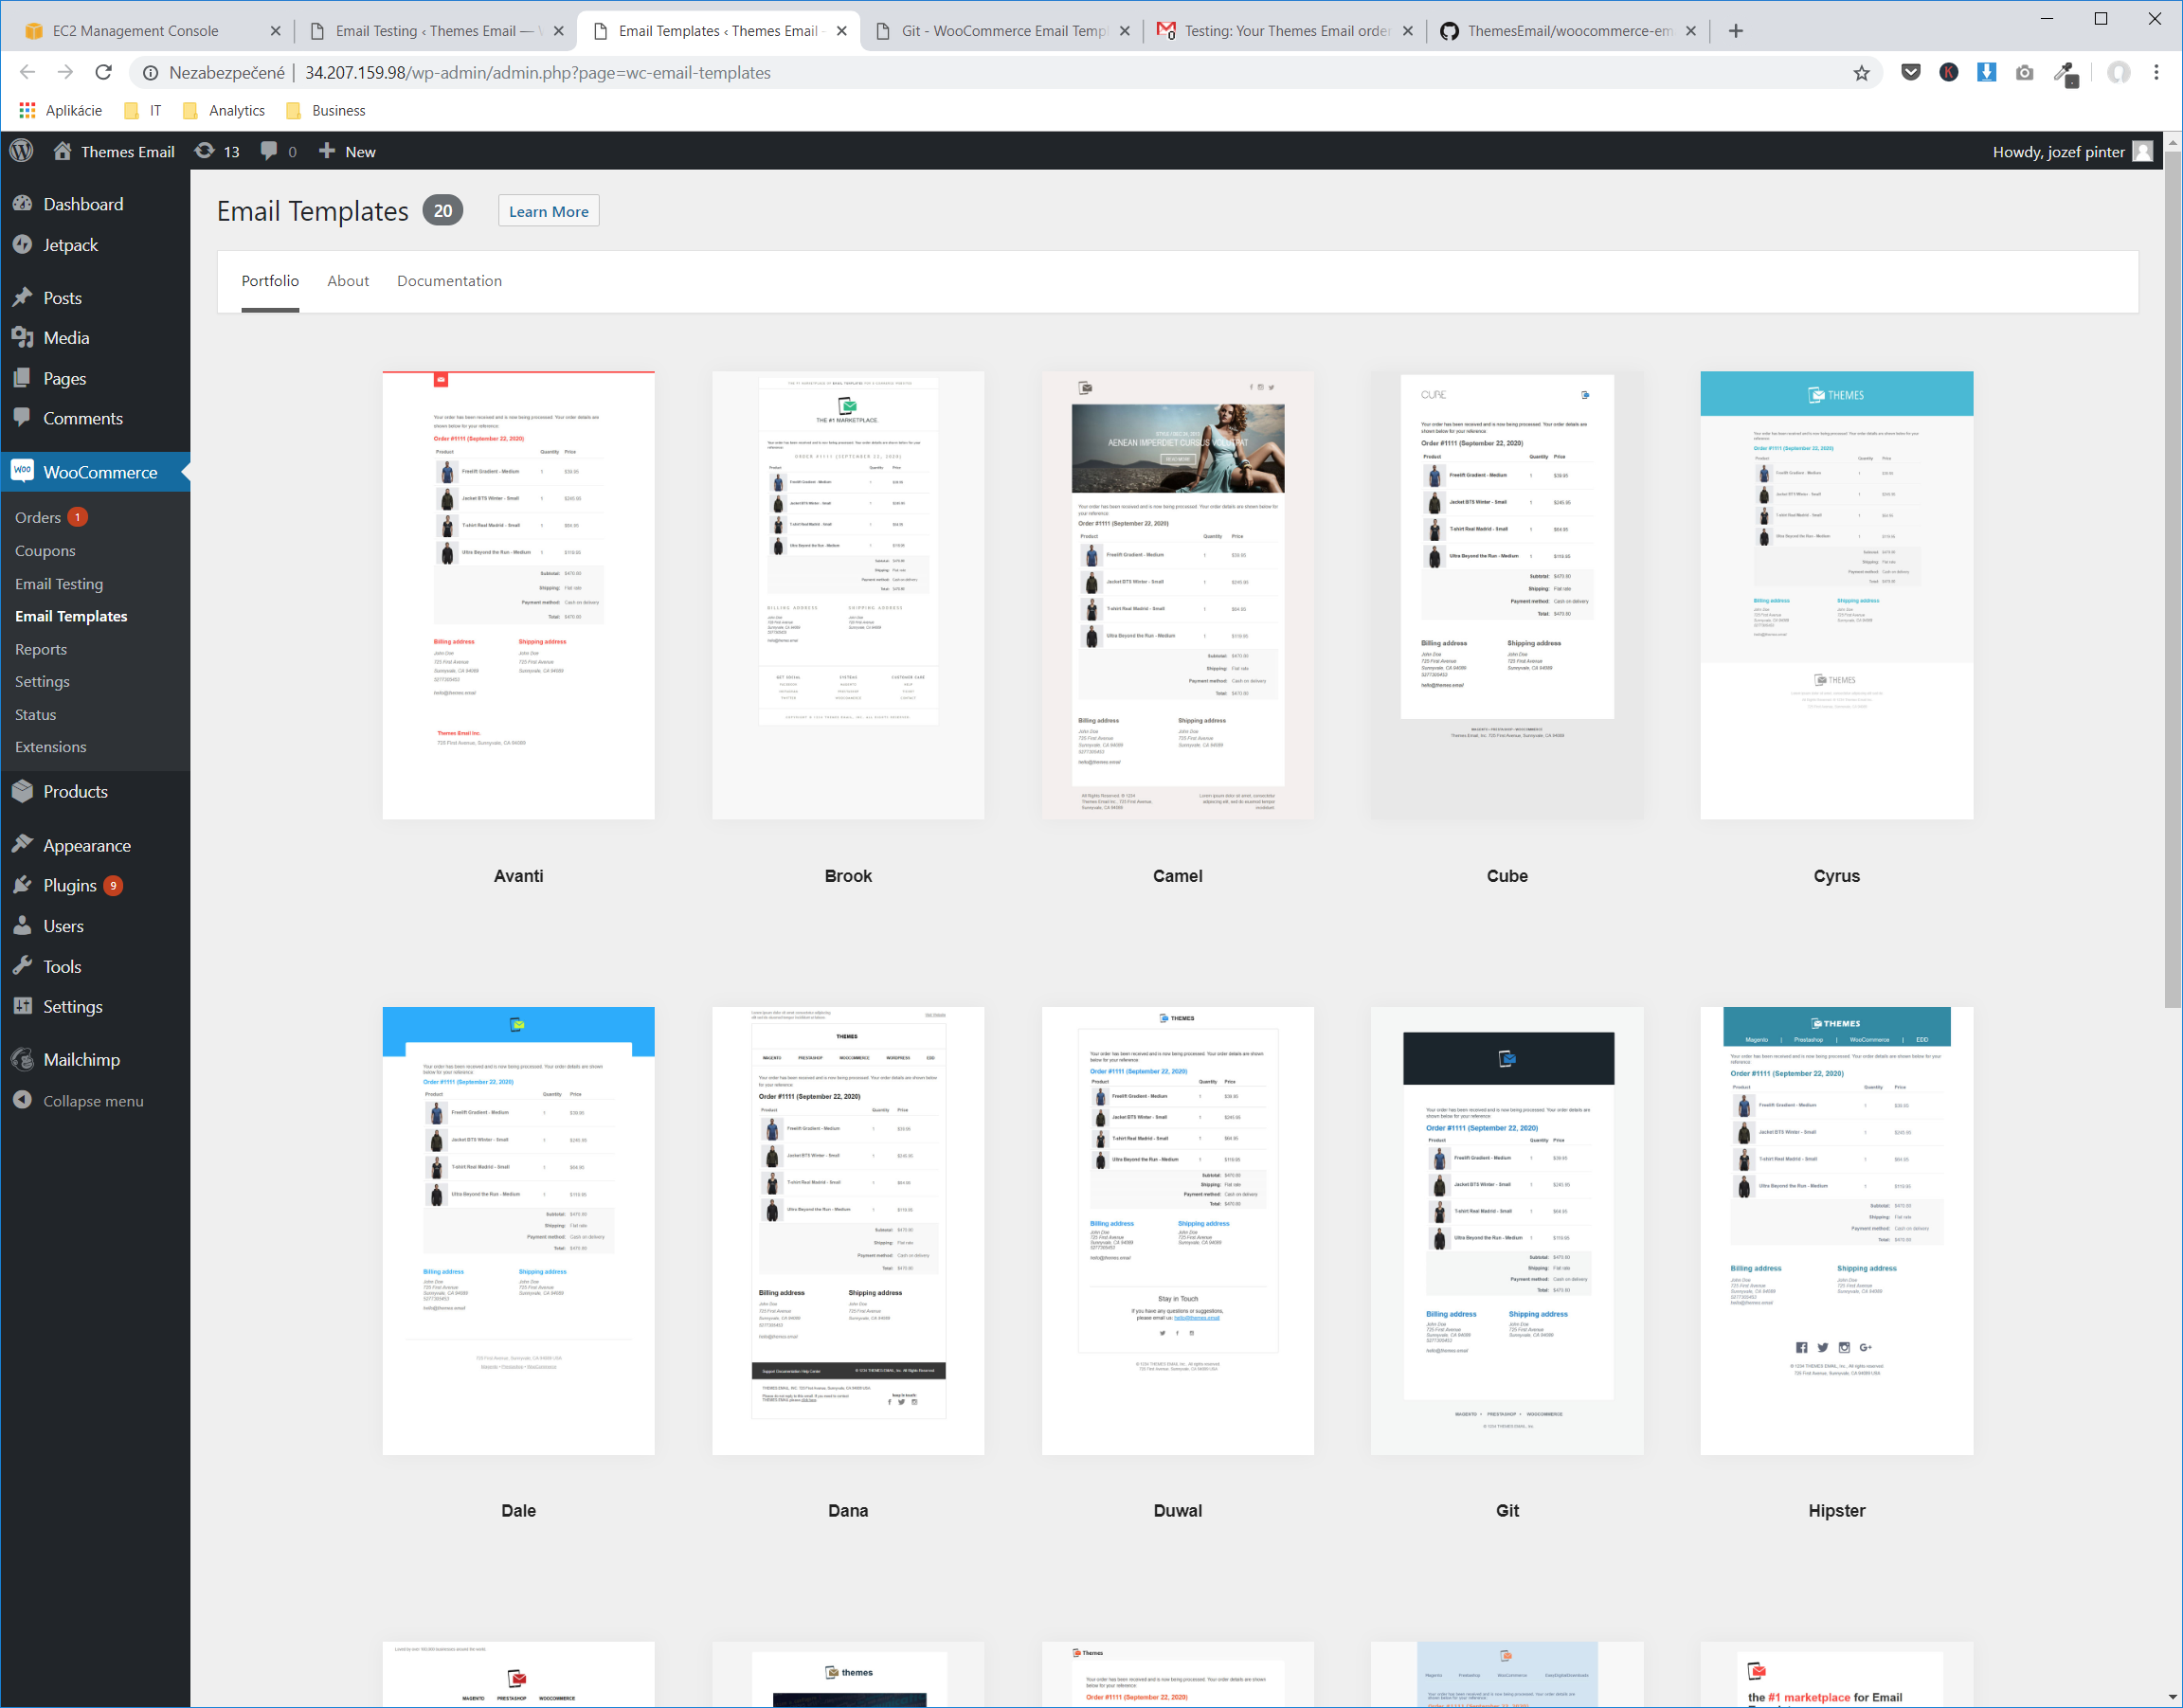 Email Templates page